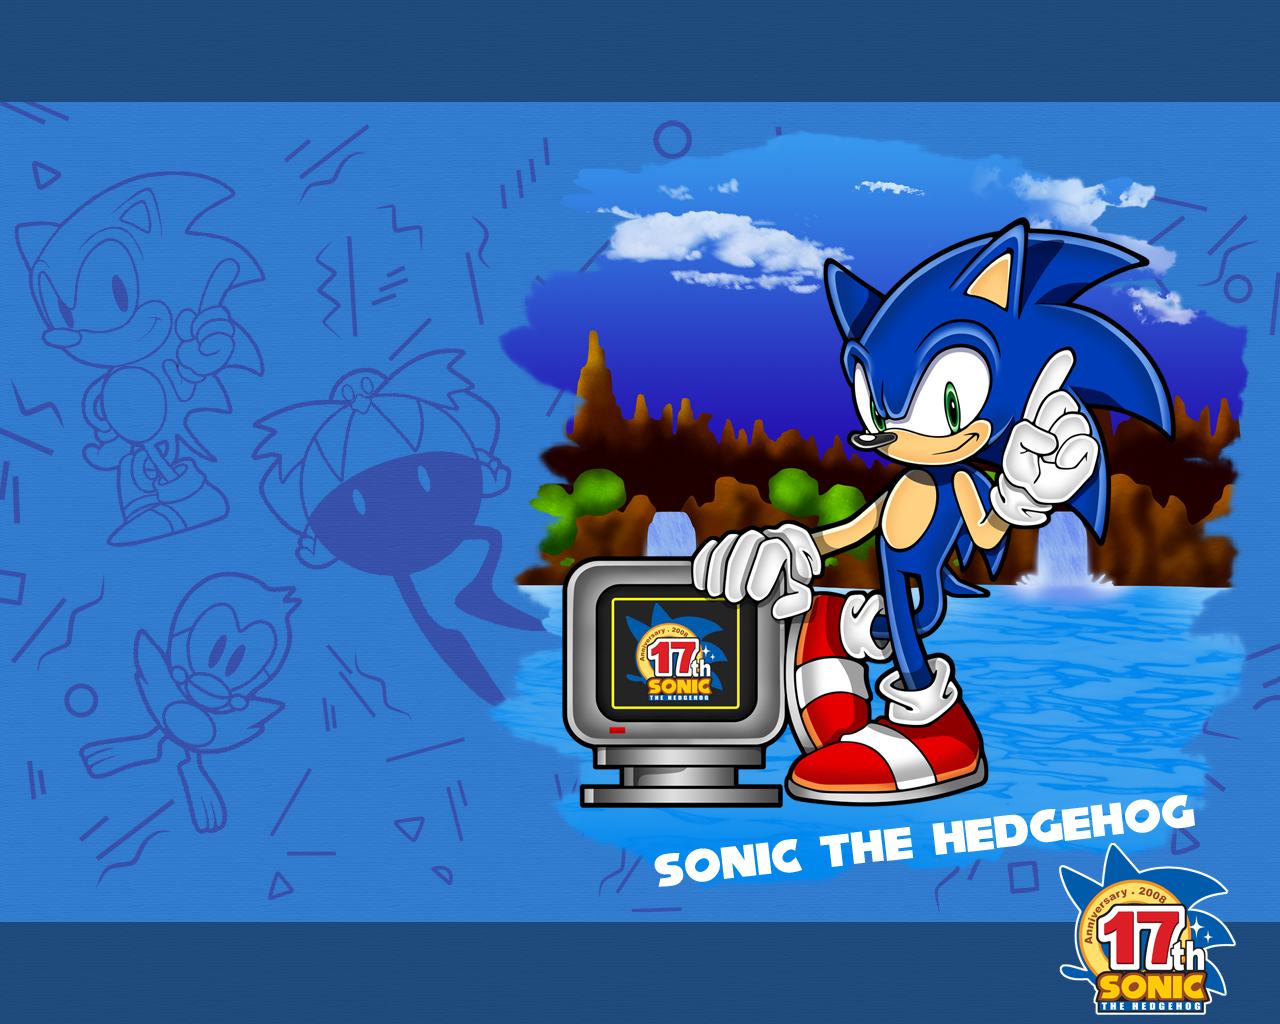 HQ RES Wallpapers of Sonic